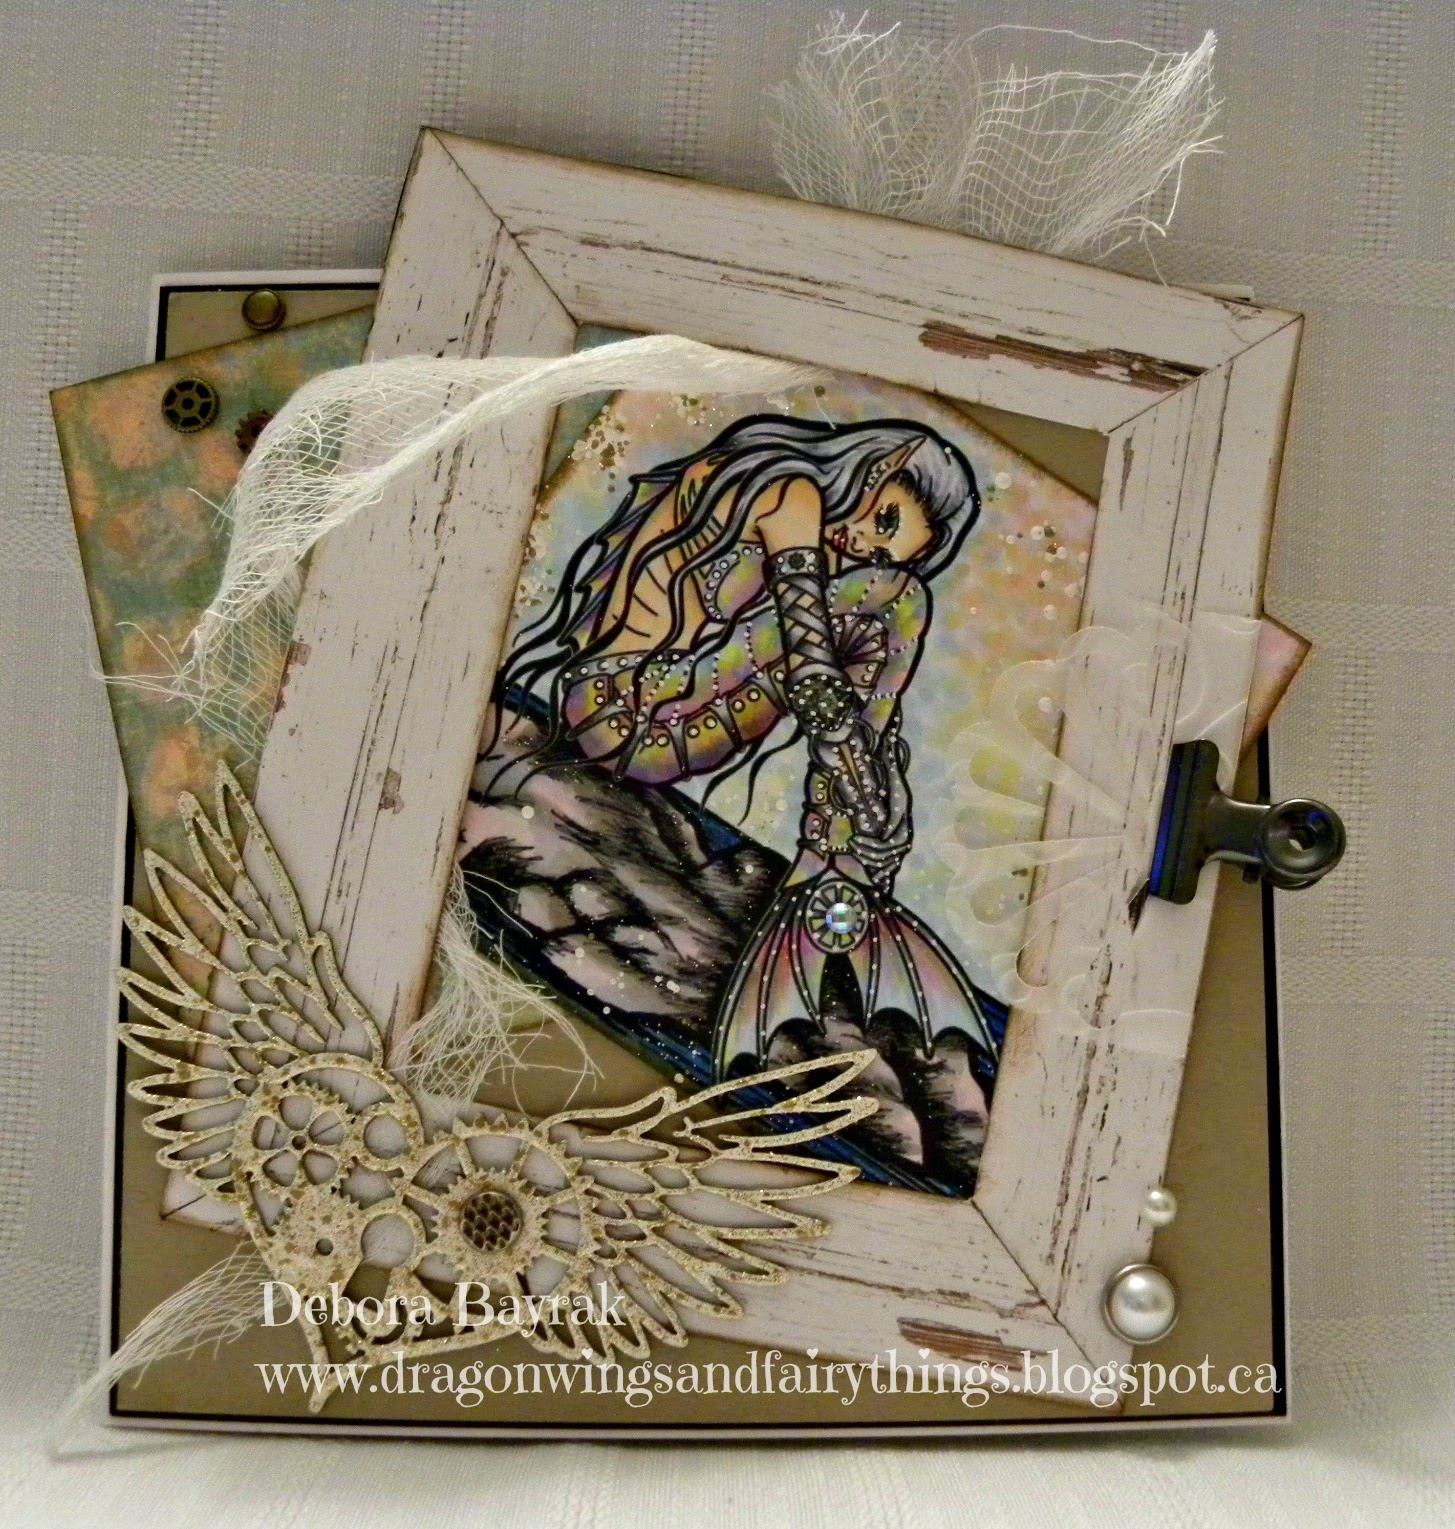 Dragon Wings And Fairy Things Steampunk Mermaid Dt Card For The